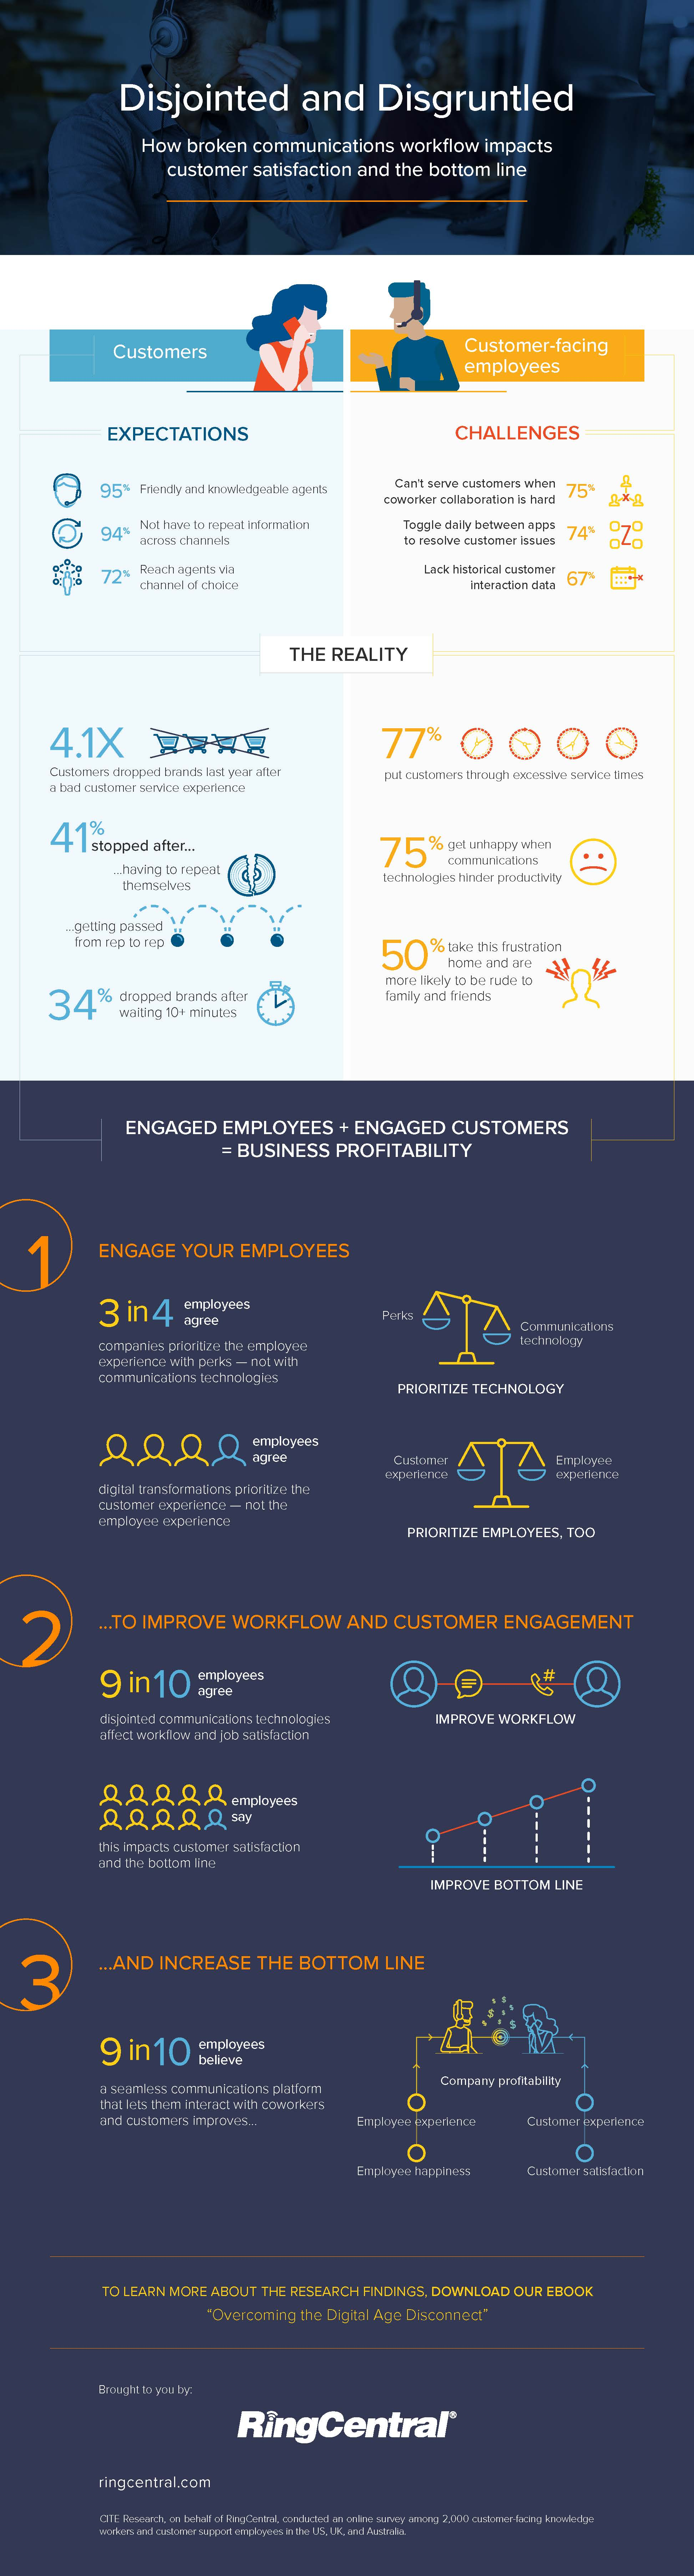 RingCentral Infographic-Contact Center